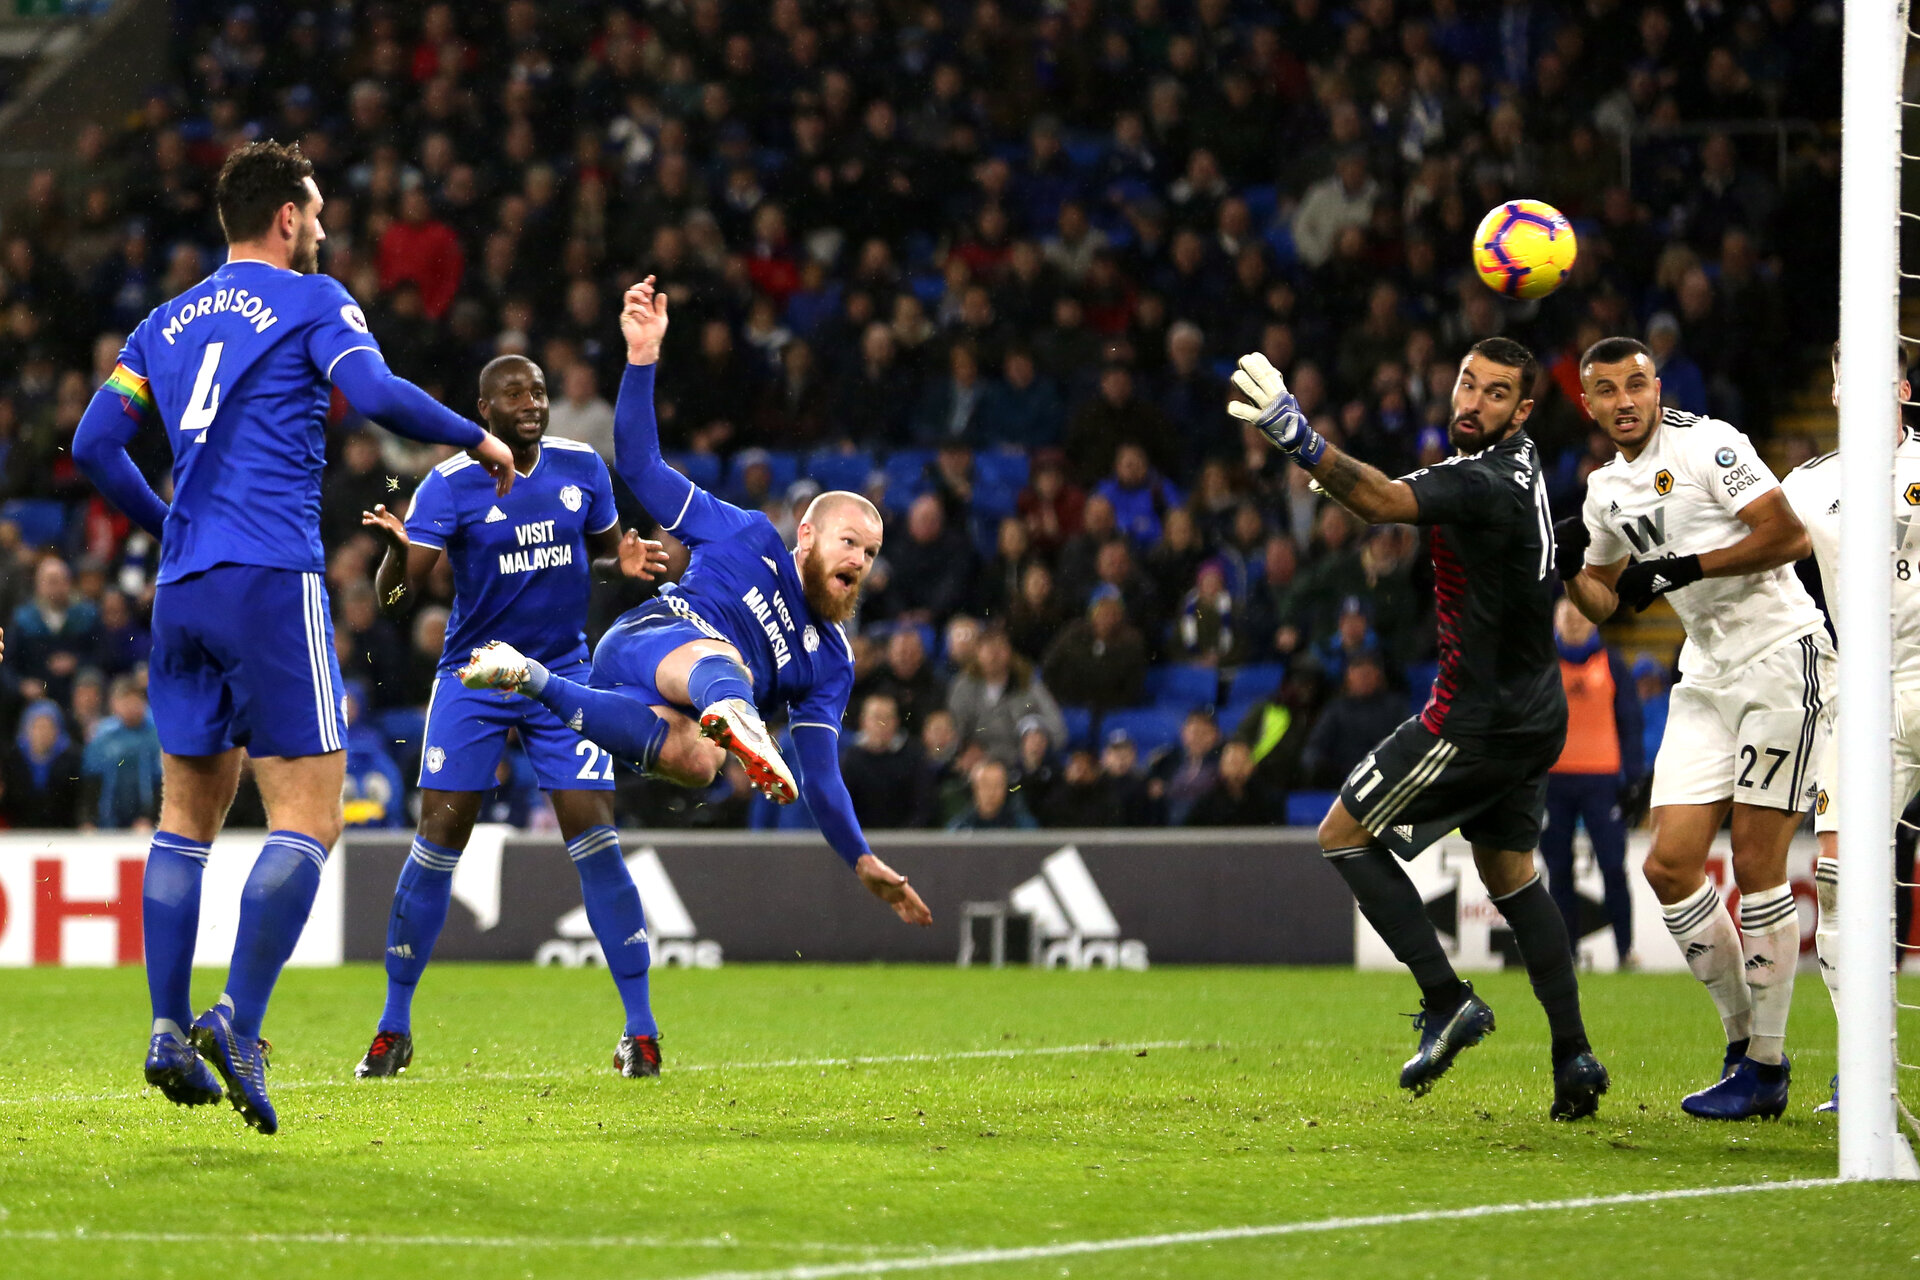 CARDIFF, WALES - NOVEMBER 30: Aron Gunnarsson of Cardiff City scores a goal to make it 1-1 during the Premier League match between Cardiff City and Wolverhampton Wanderers at Cardiff City Stadium on November 30, 2018 in Cardiff, United Kingdom. (Photo by Molly Darlington - AMA/Getty Images)